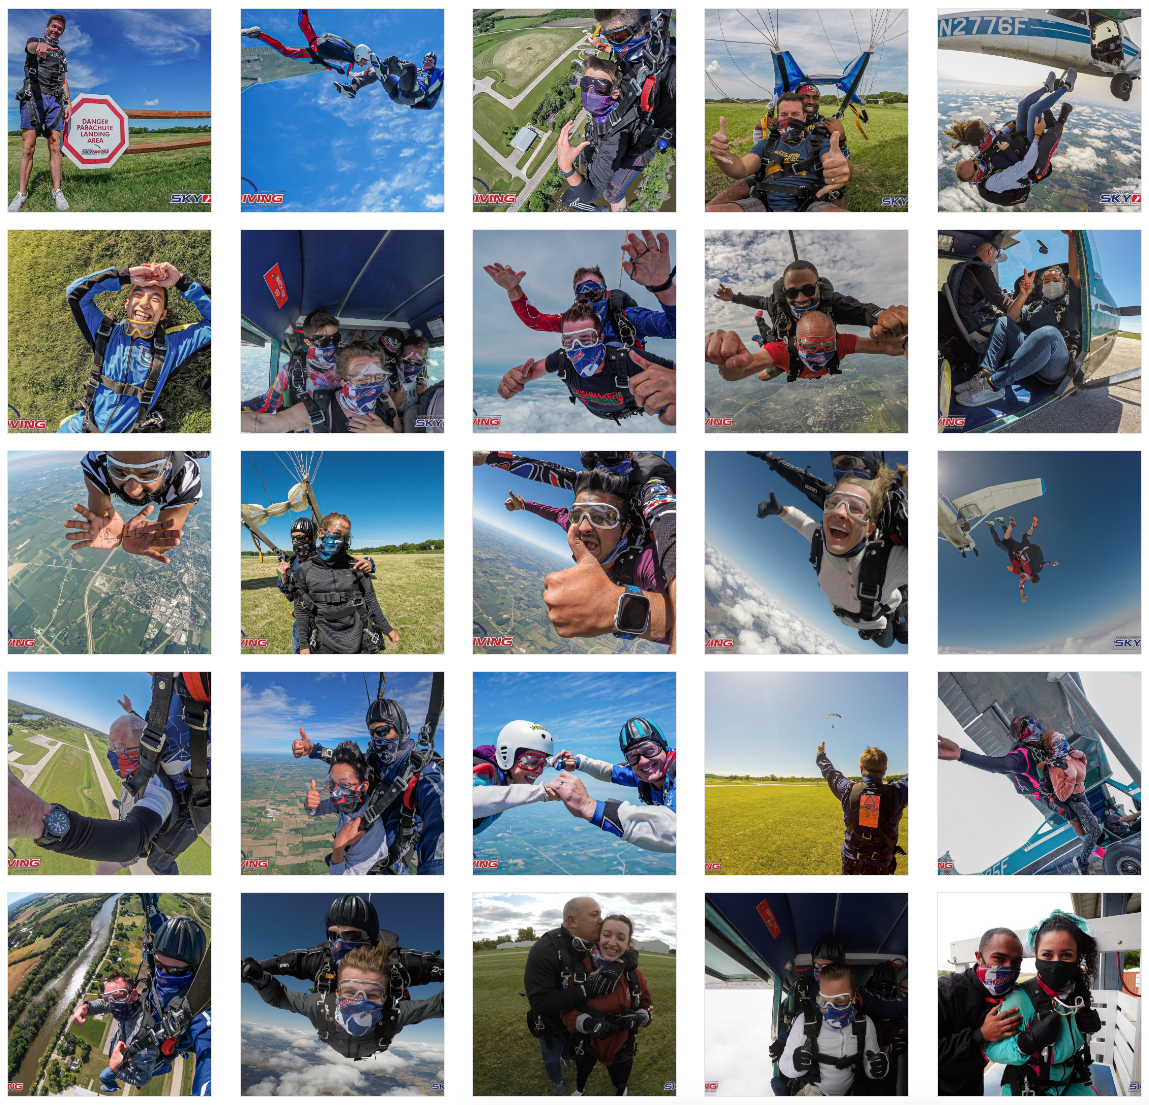 Skydiving photo montage at Wisconsin Skydiving Center near Chicago